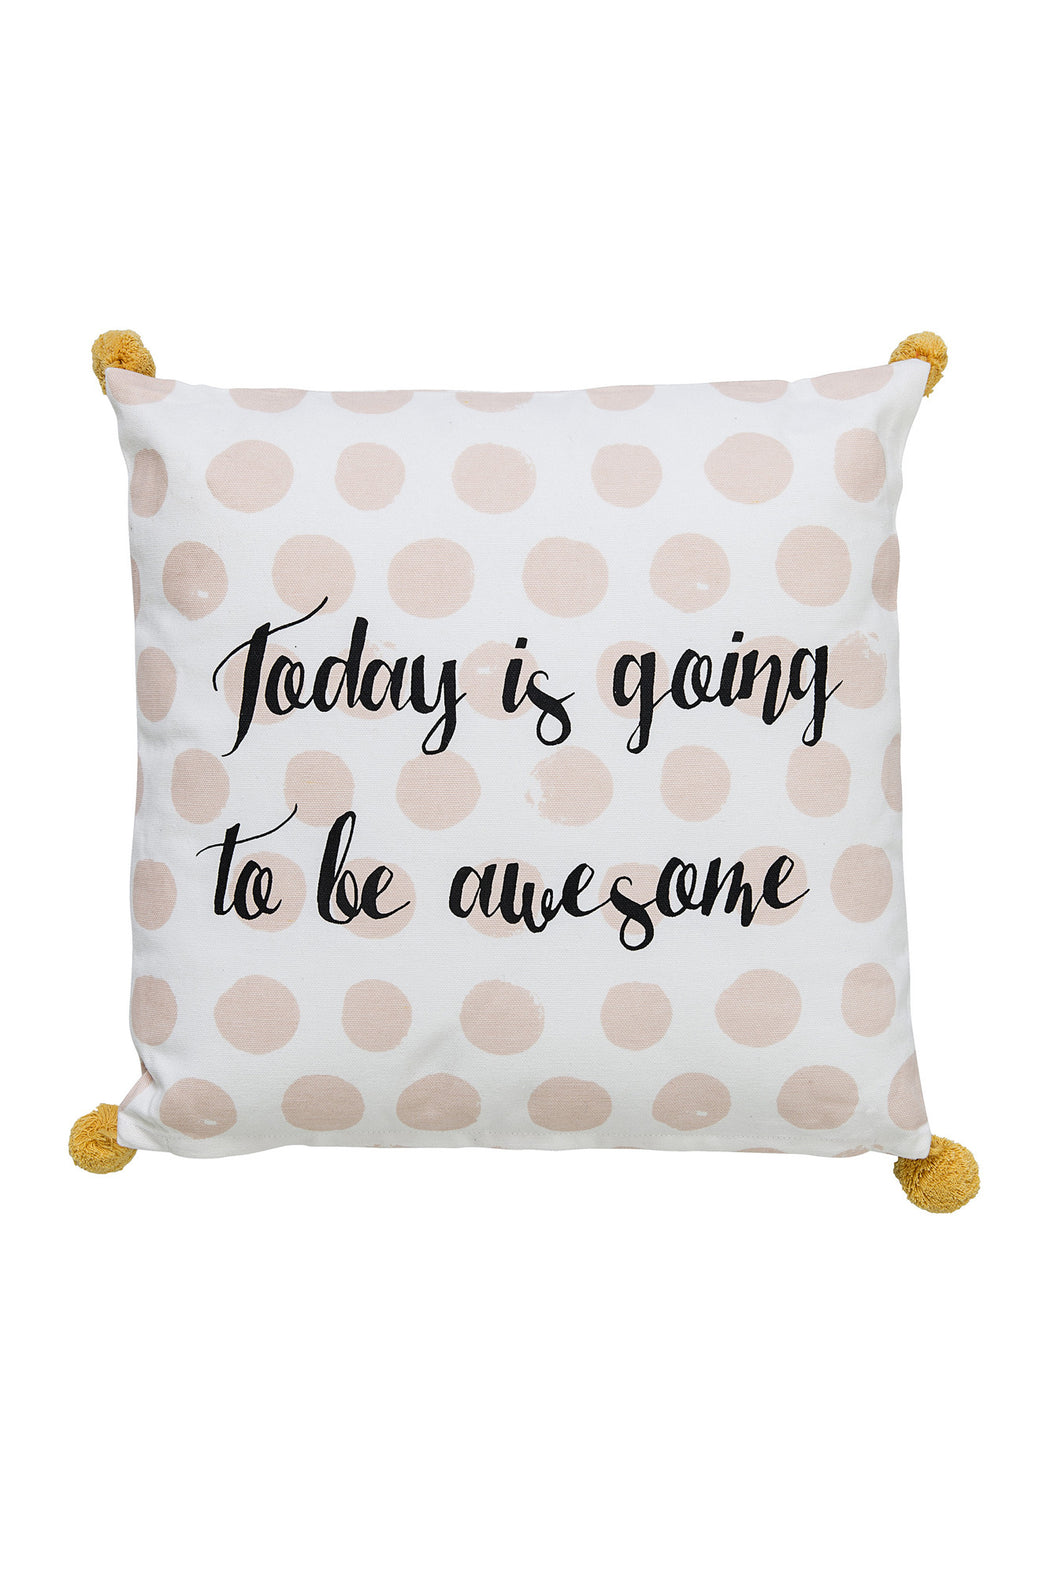 Awesome Day Cushion, Cushion, Bloomingville - 3LittlePicks